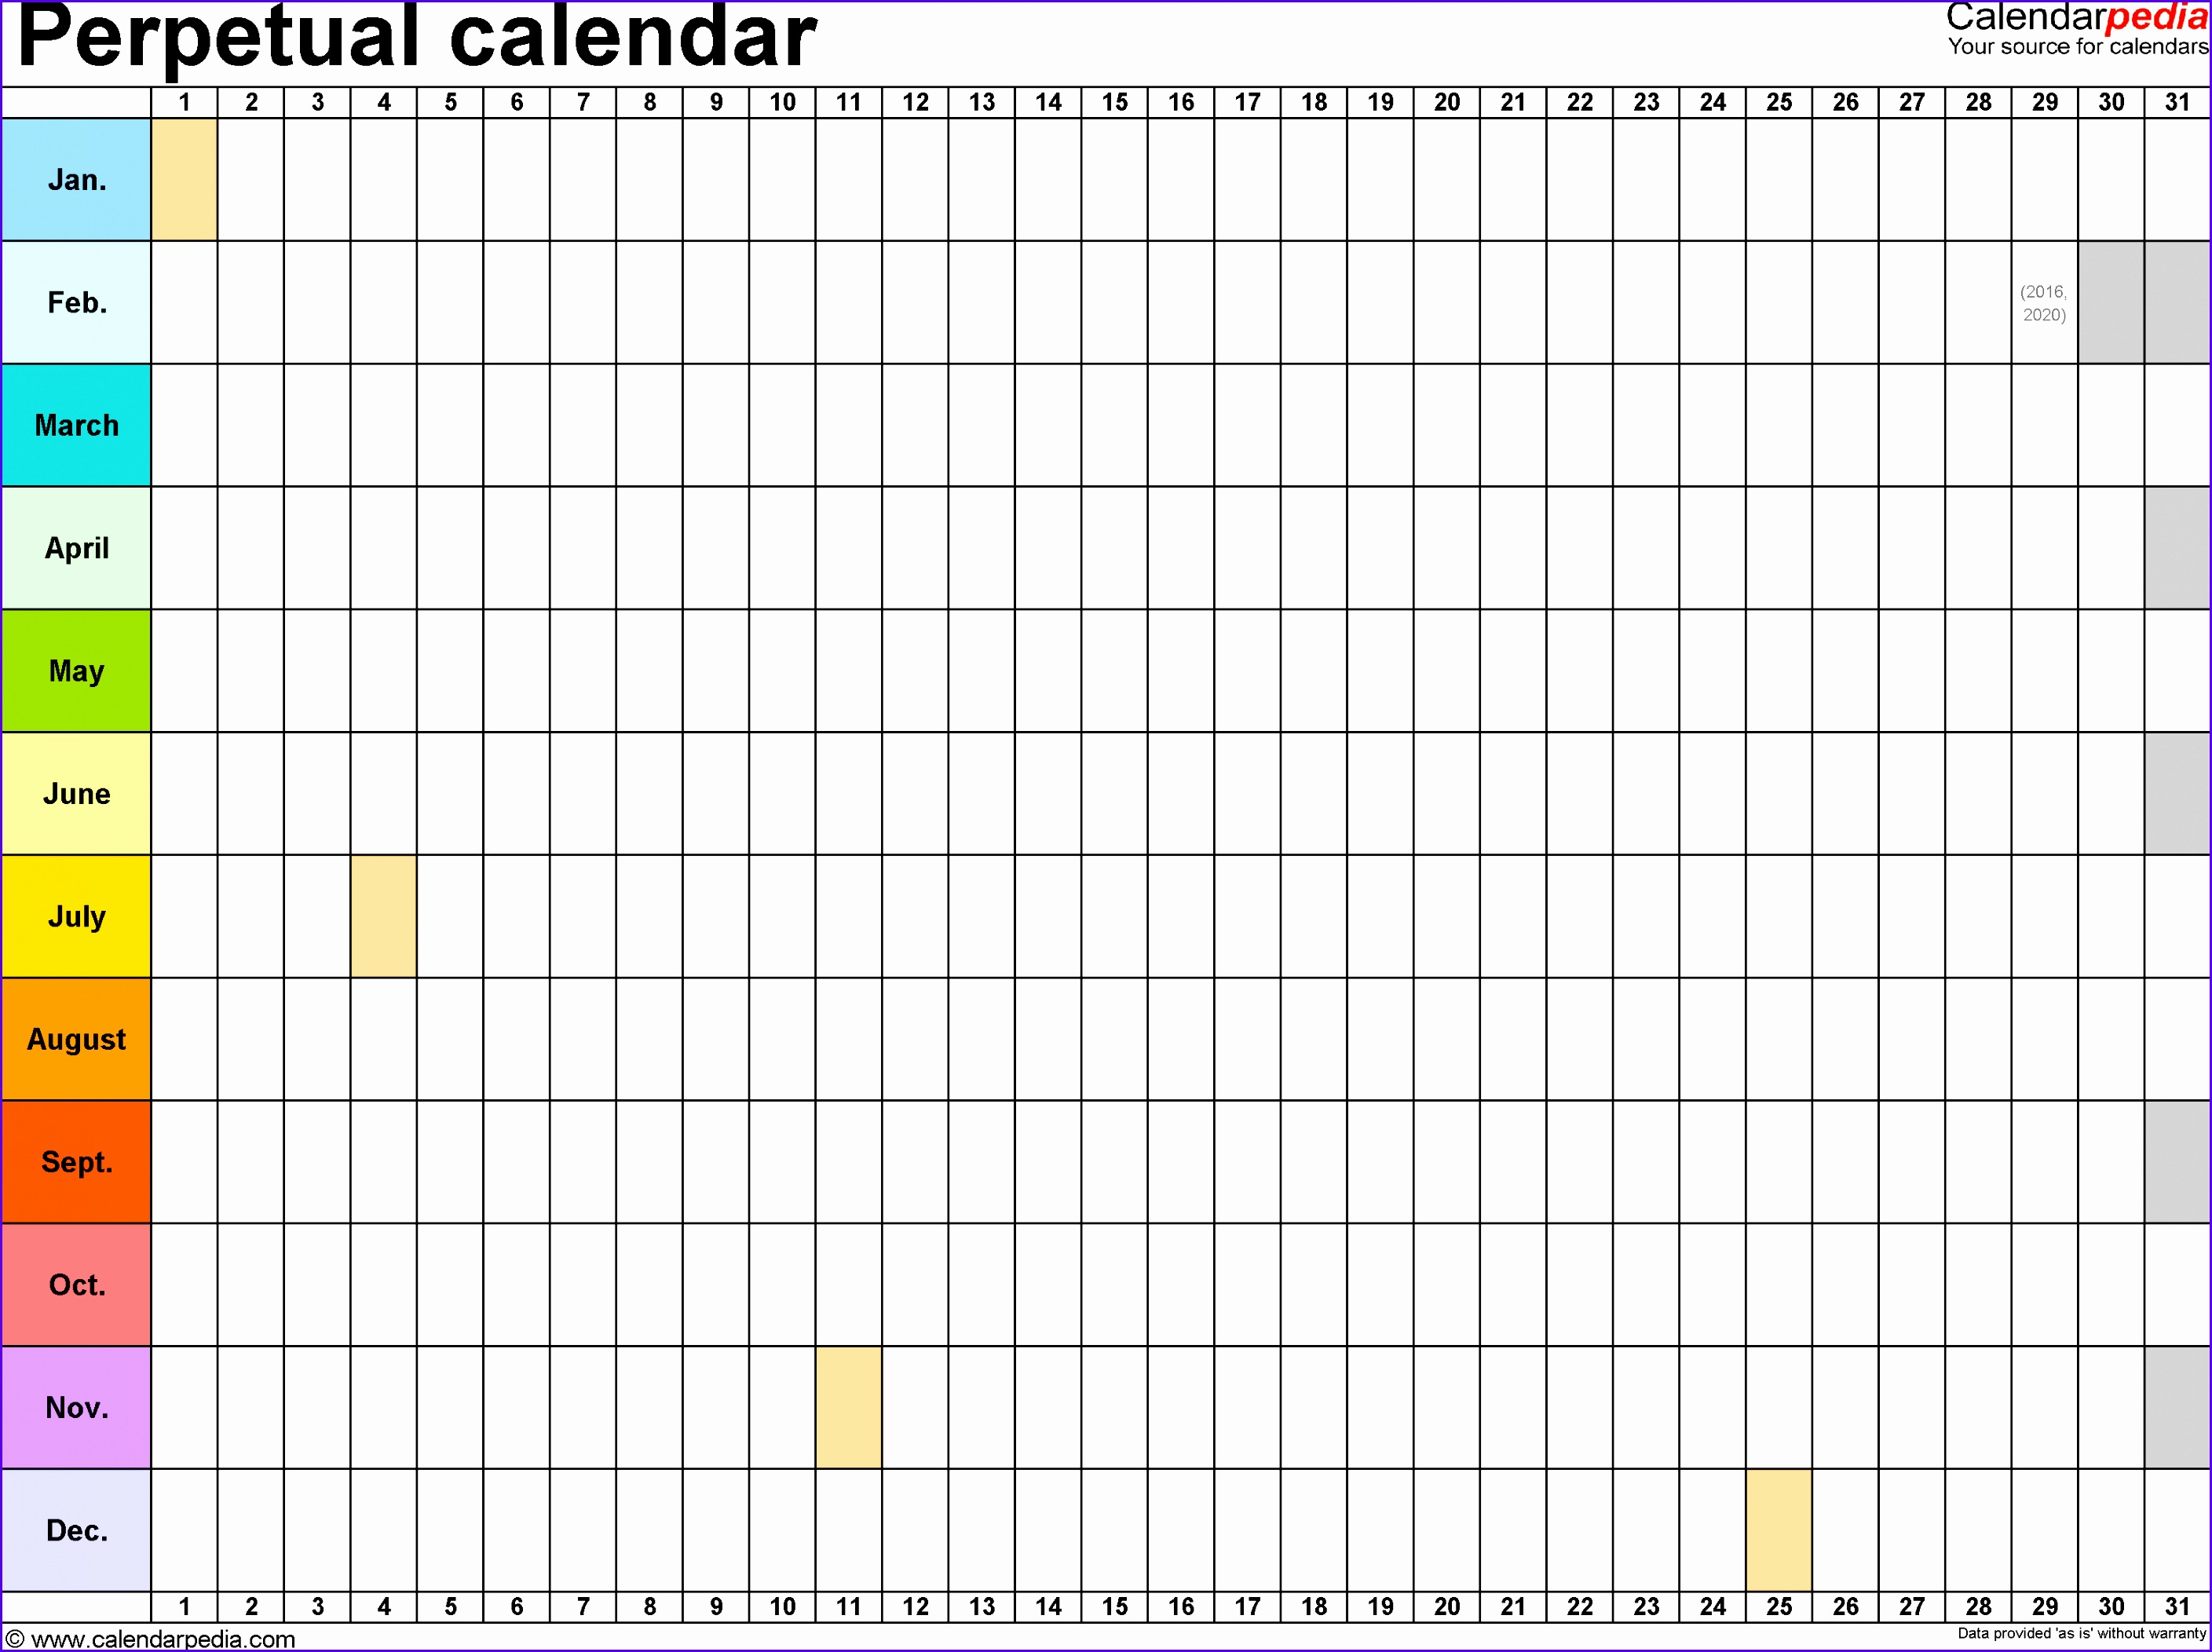 Template 2 Excel template for perpetual calendar landscape orientation 1 page 28172104